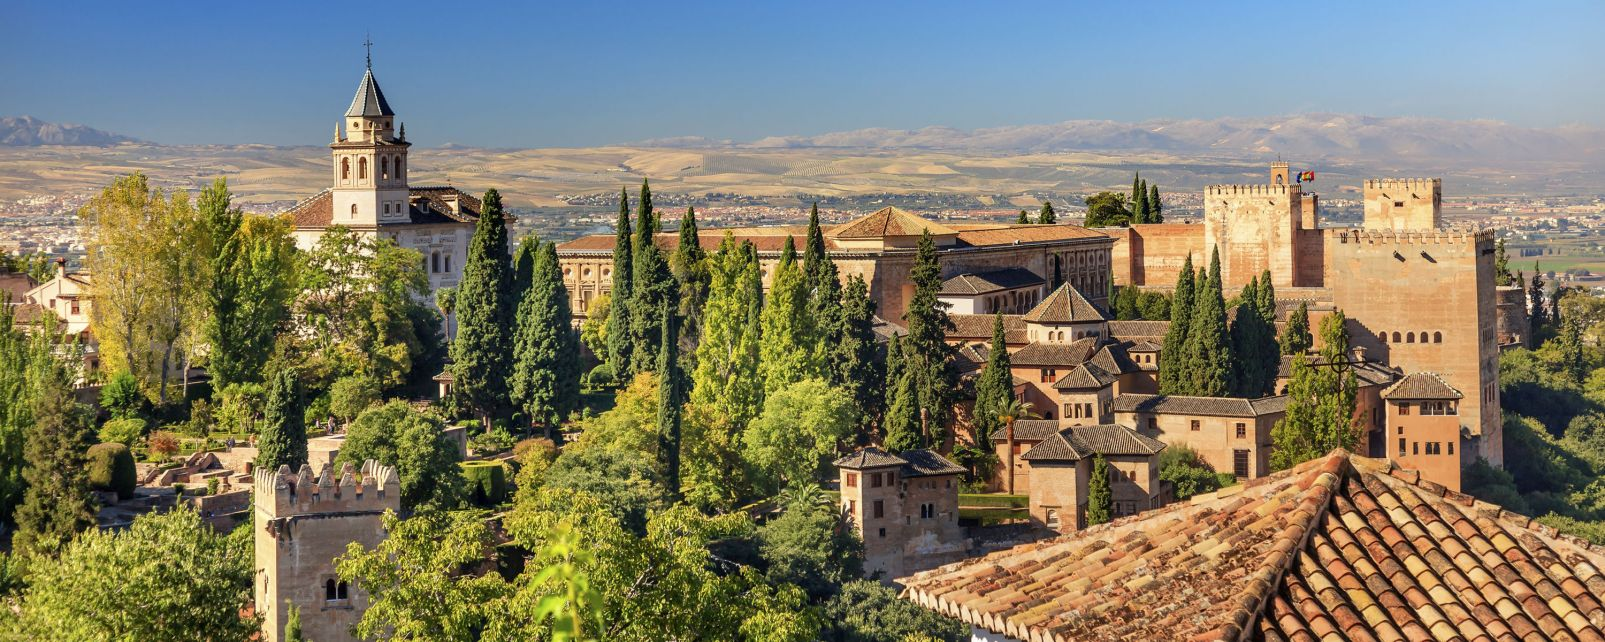 The Alhambra, Sierra Nevada, Landscapes, Almeria, Andalusia